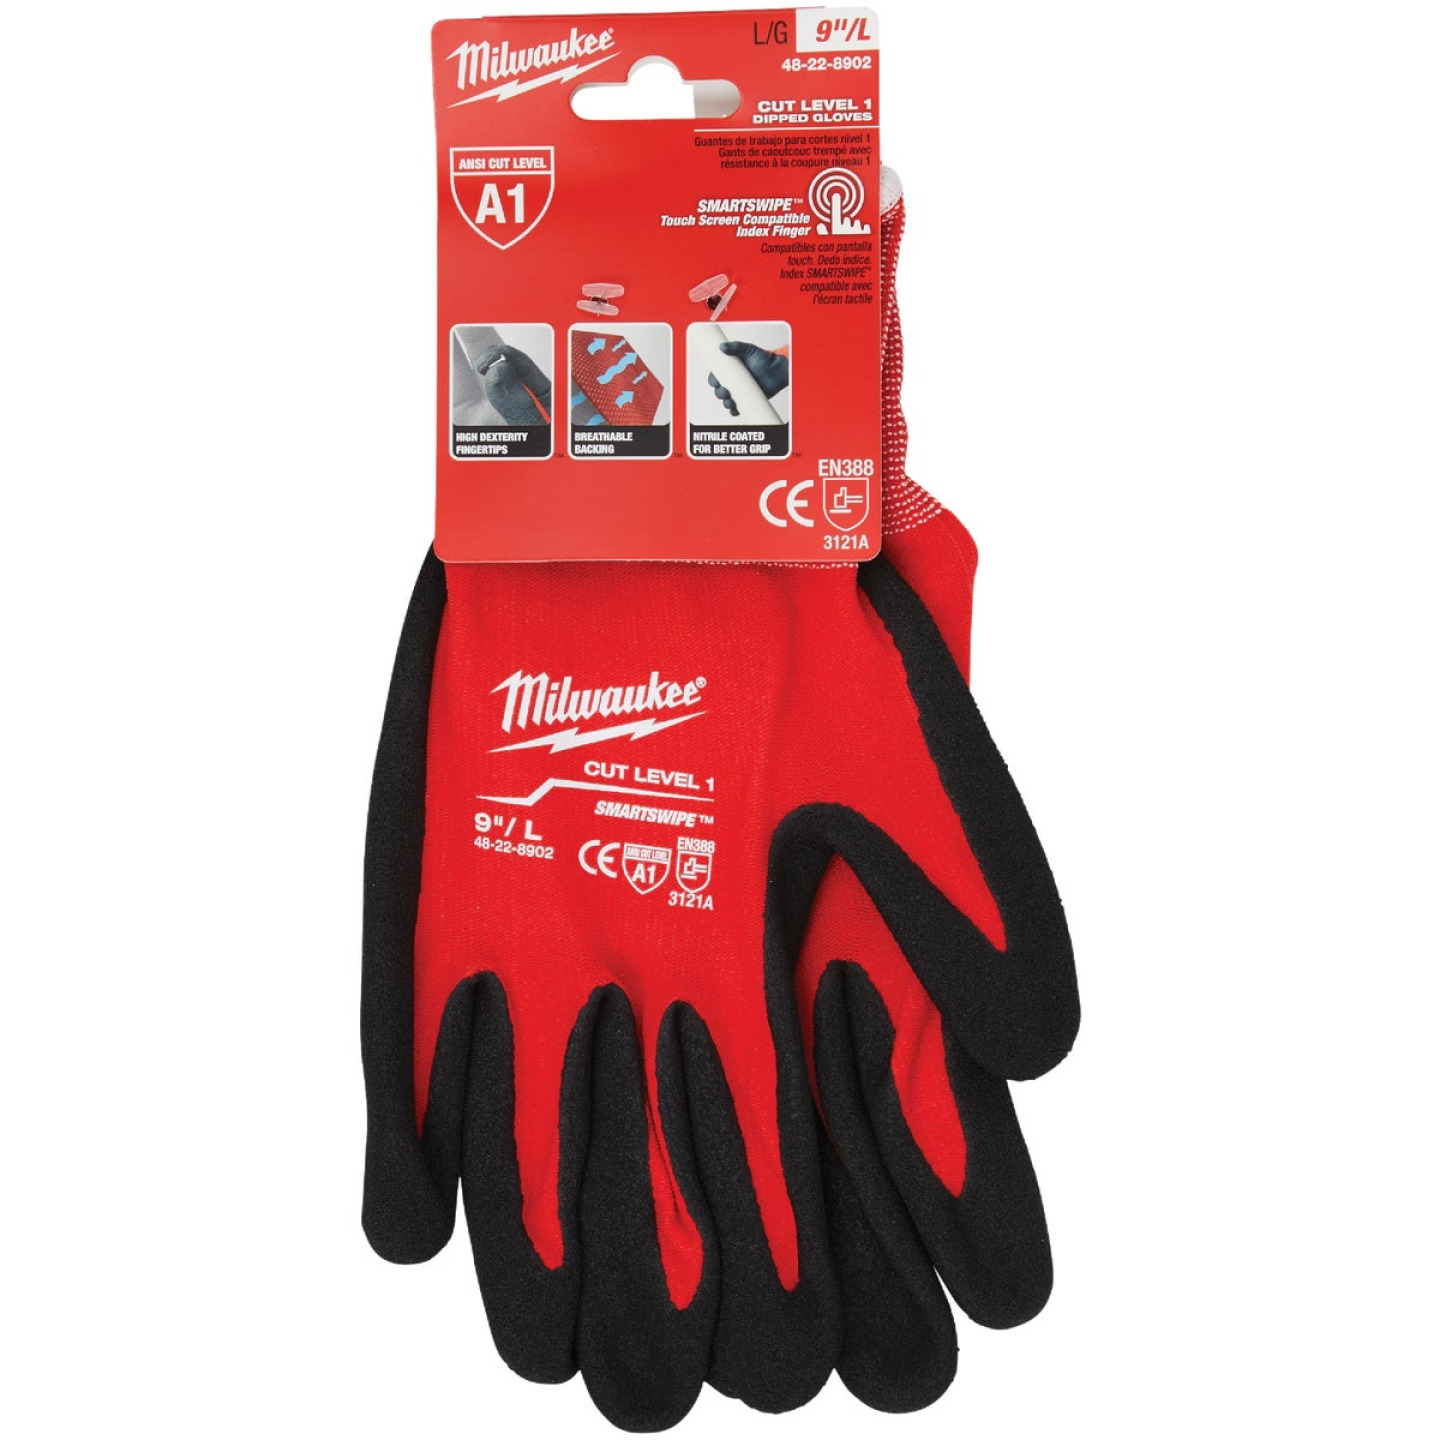 Milwaukee Men's Large Nitrile Coated Cut Level 1 Work Glove Image 6